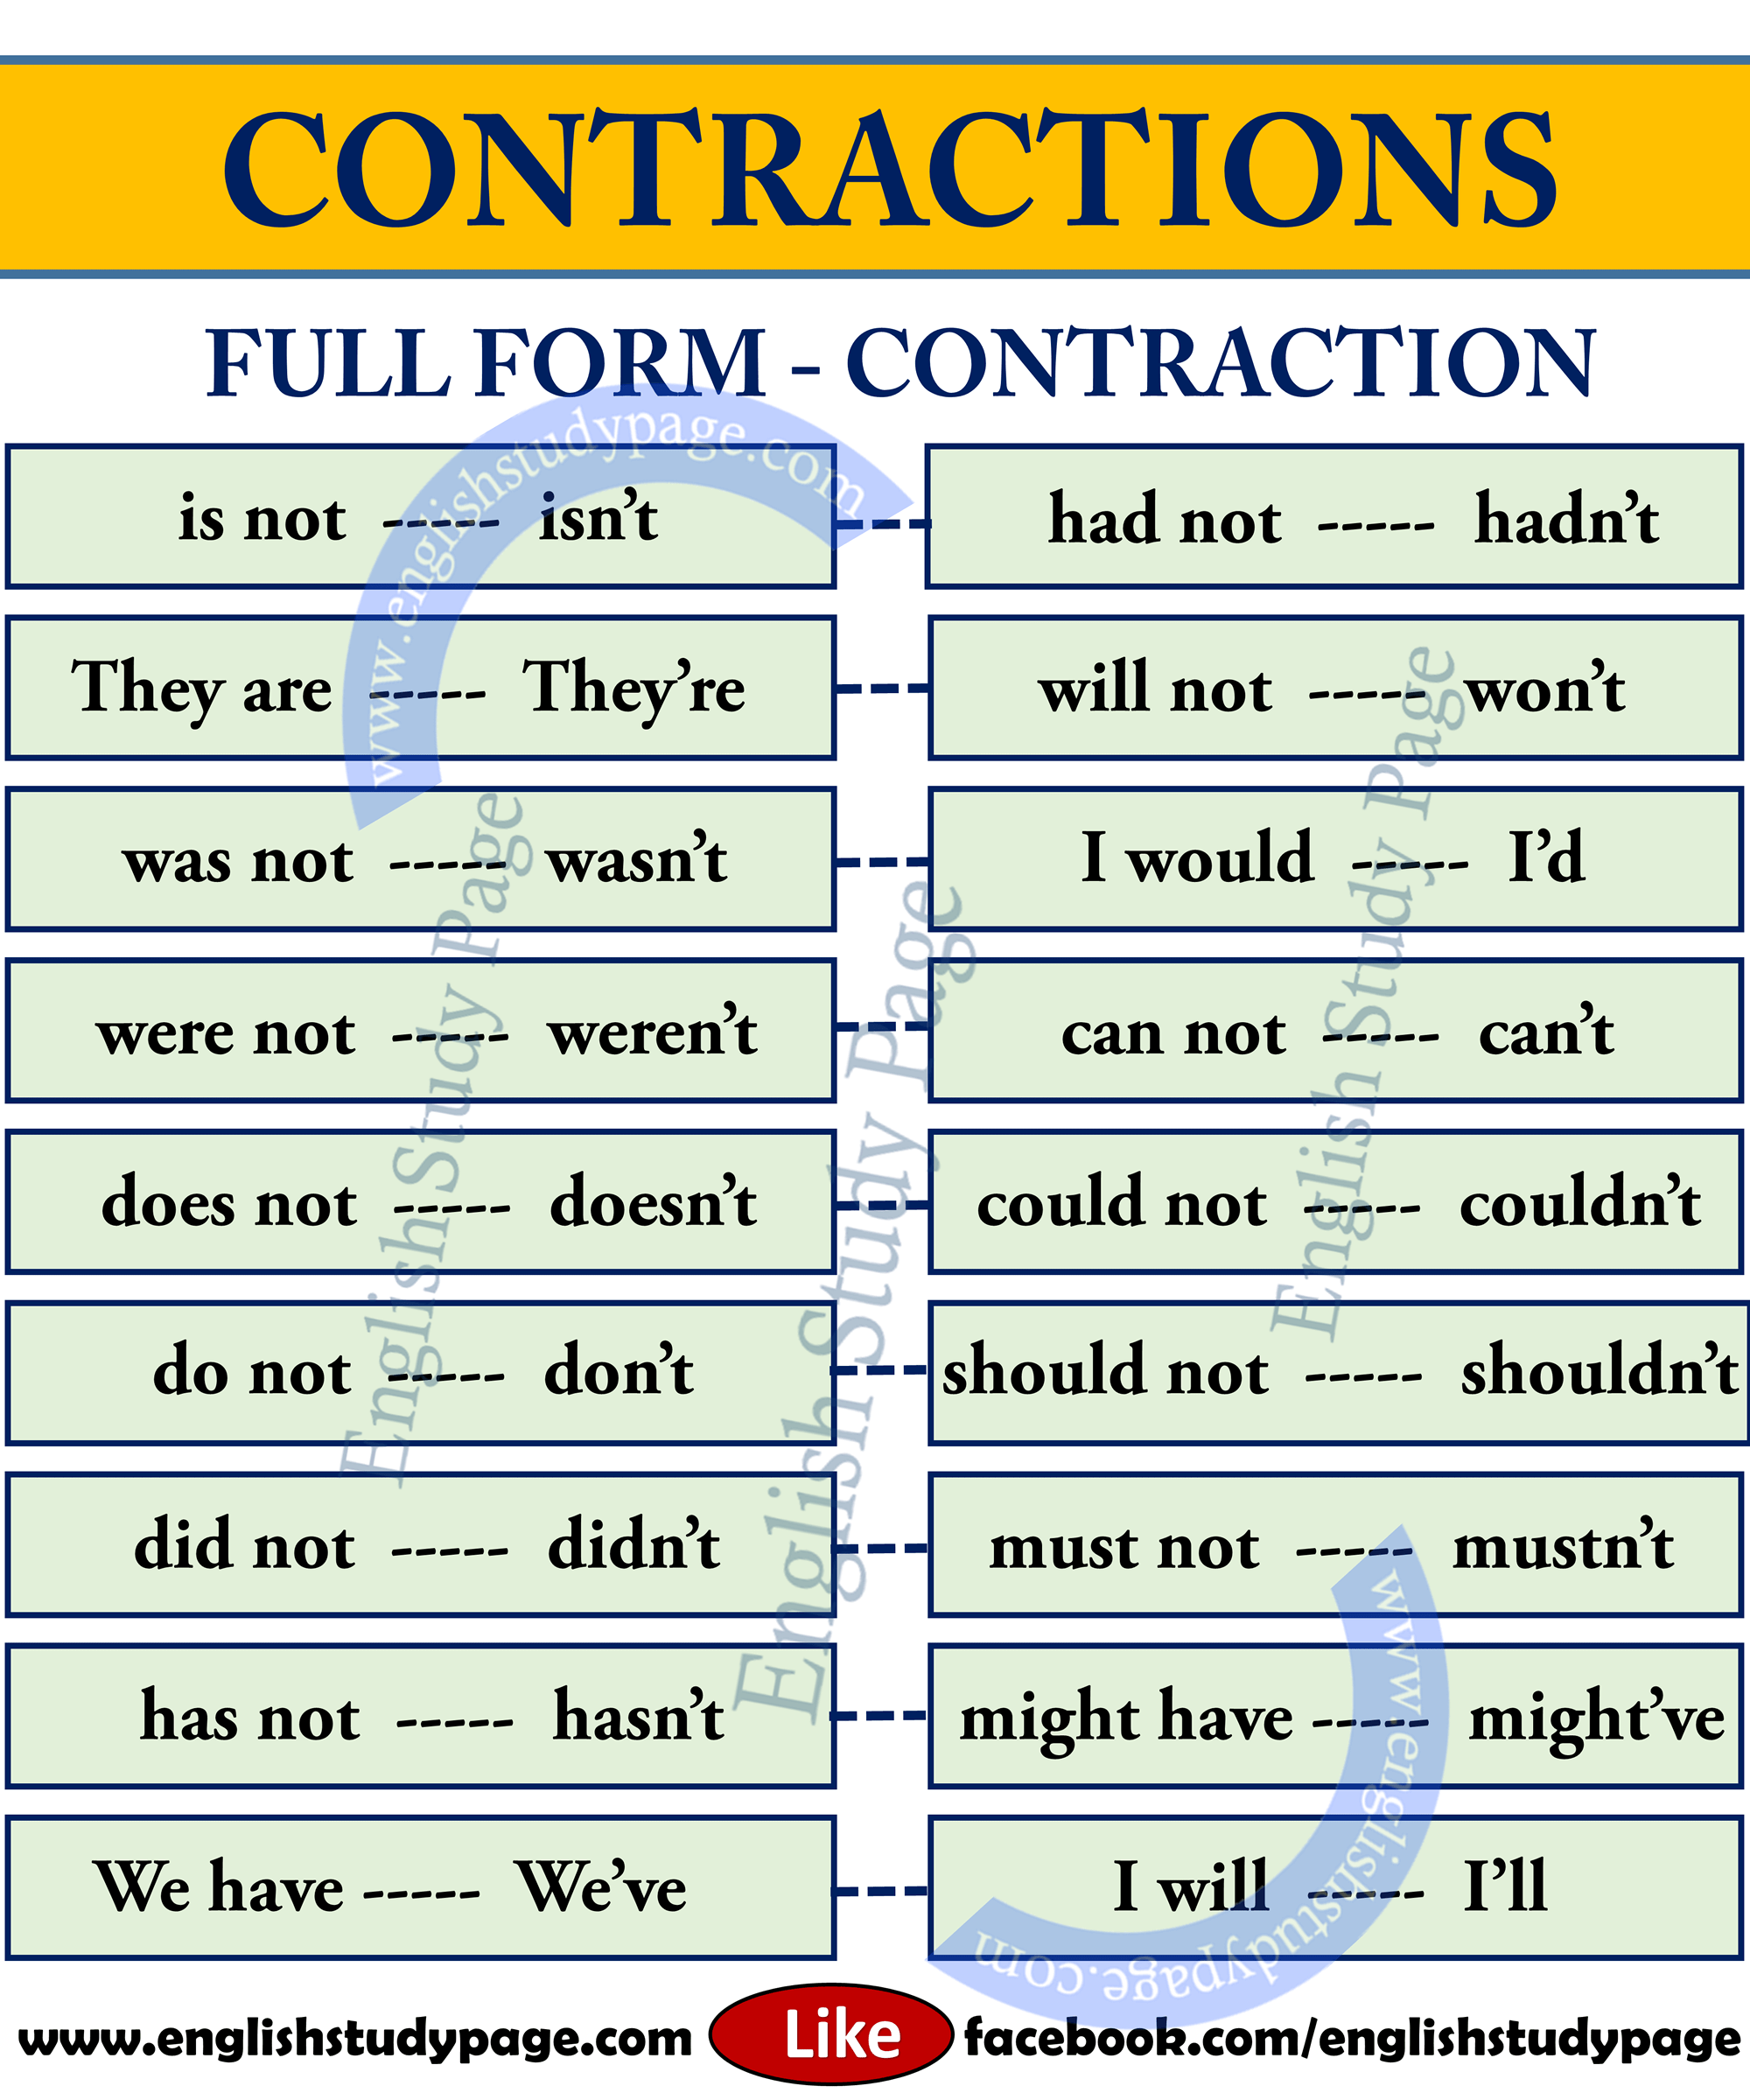 English grammar contraction rules. What are the rules on forming.